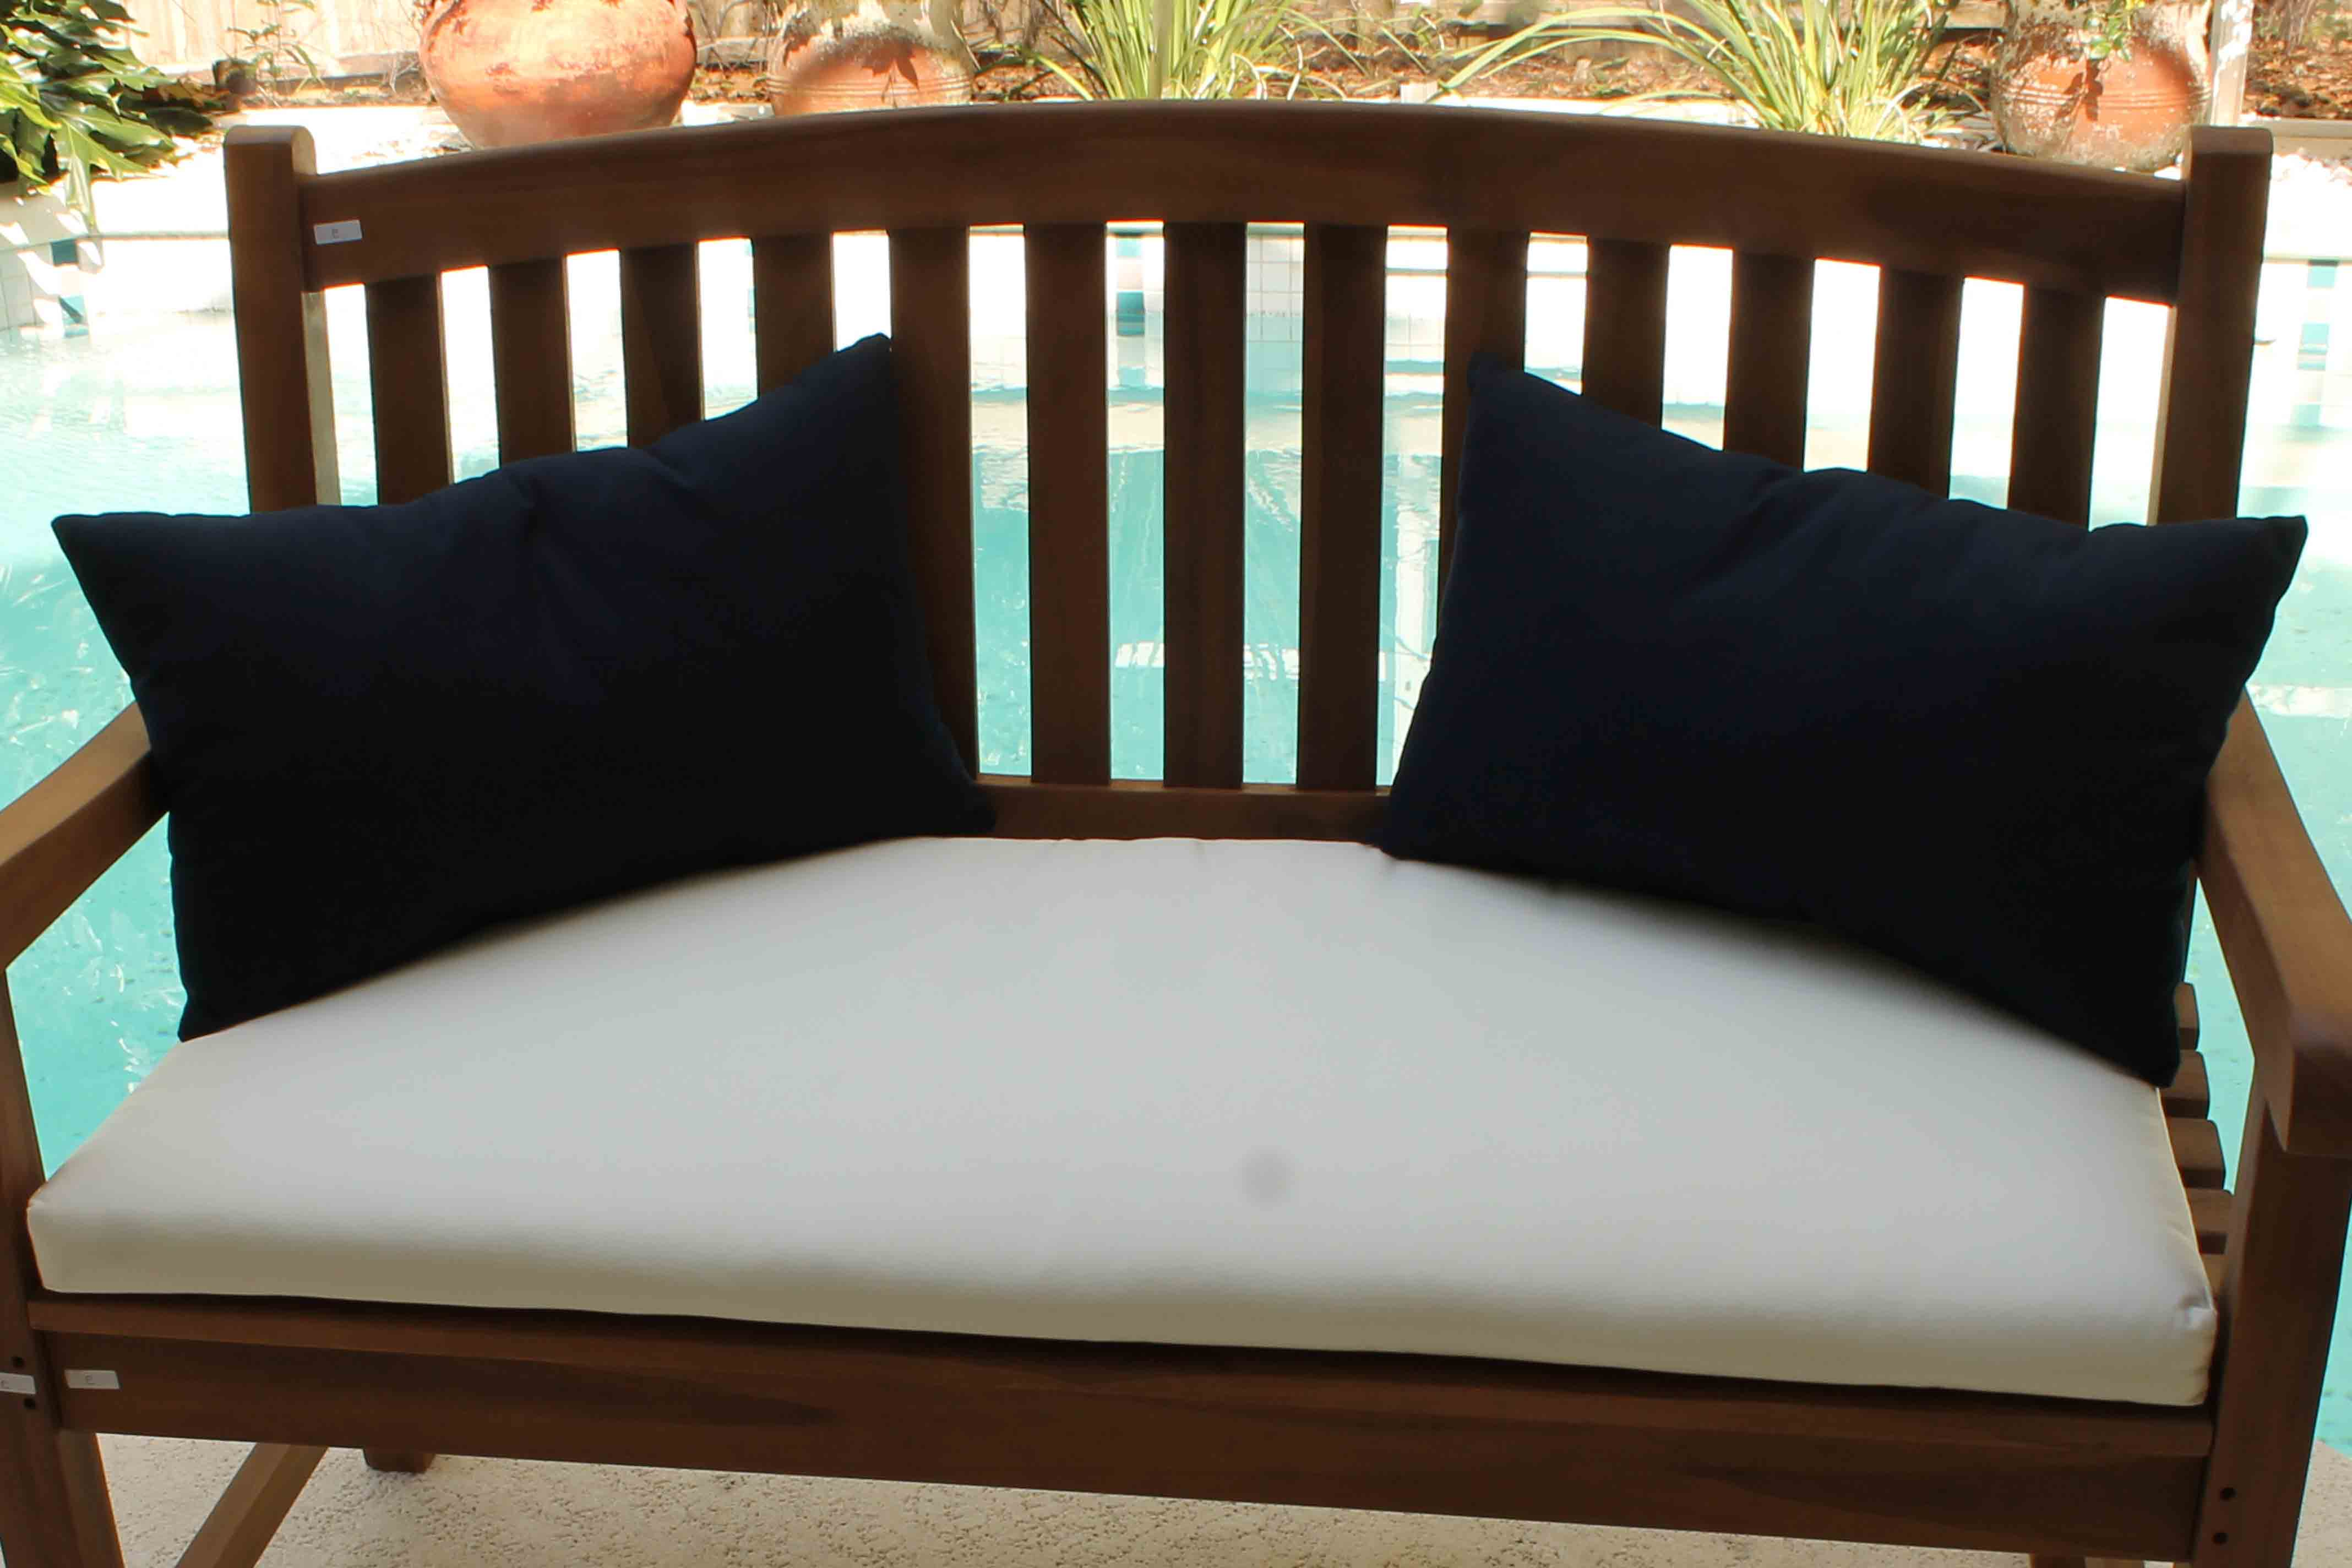 diy patio slipcovers on cushions amazon and lowes pillow pillows outdoor sale cushion covers